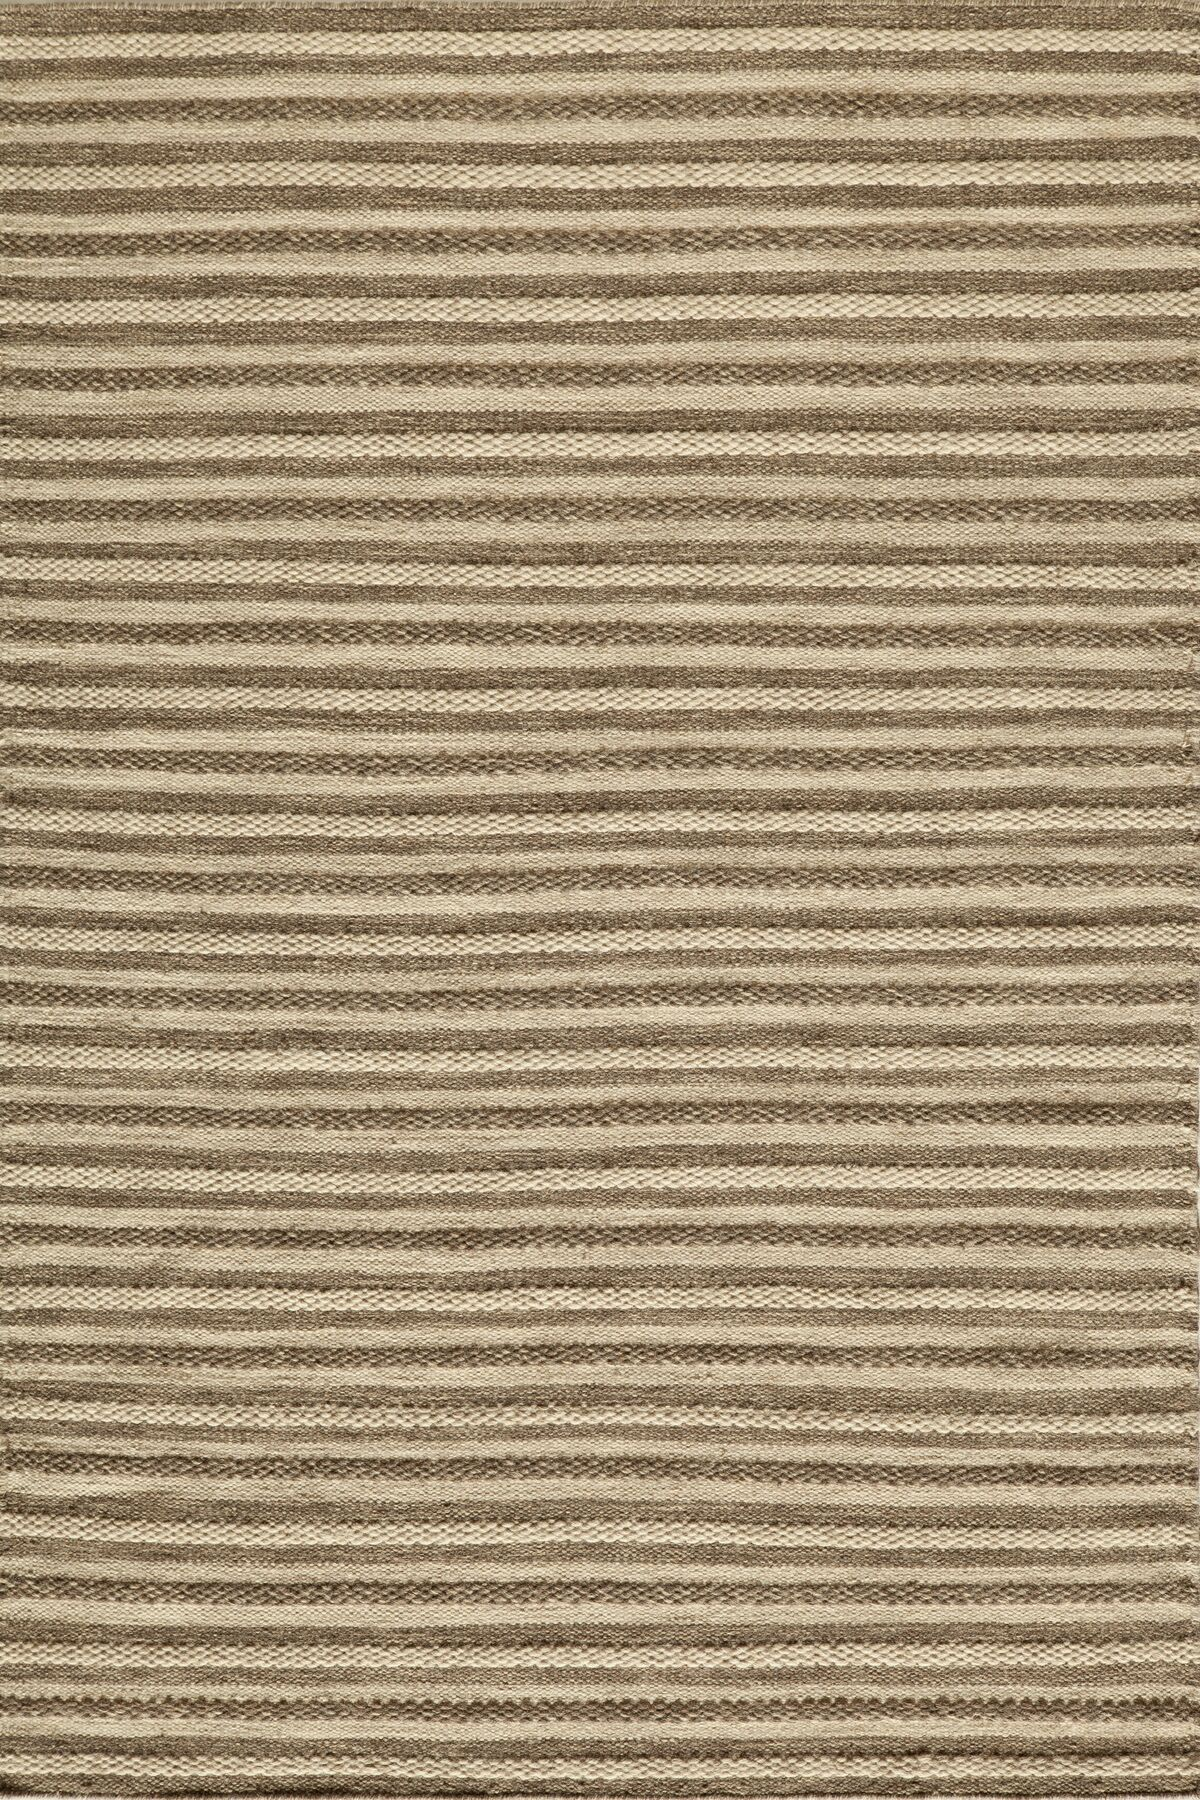 Epping Hand-Woven Natural Area Rug Rug Size: Rectangle 5' x 8'